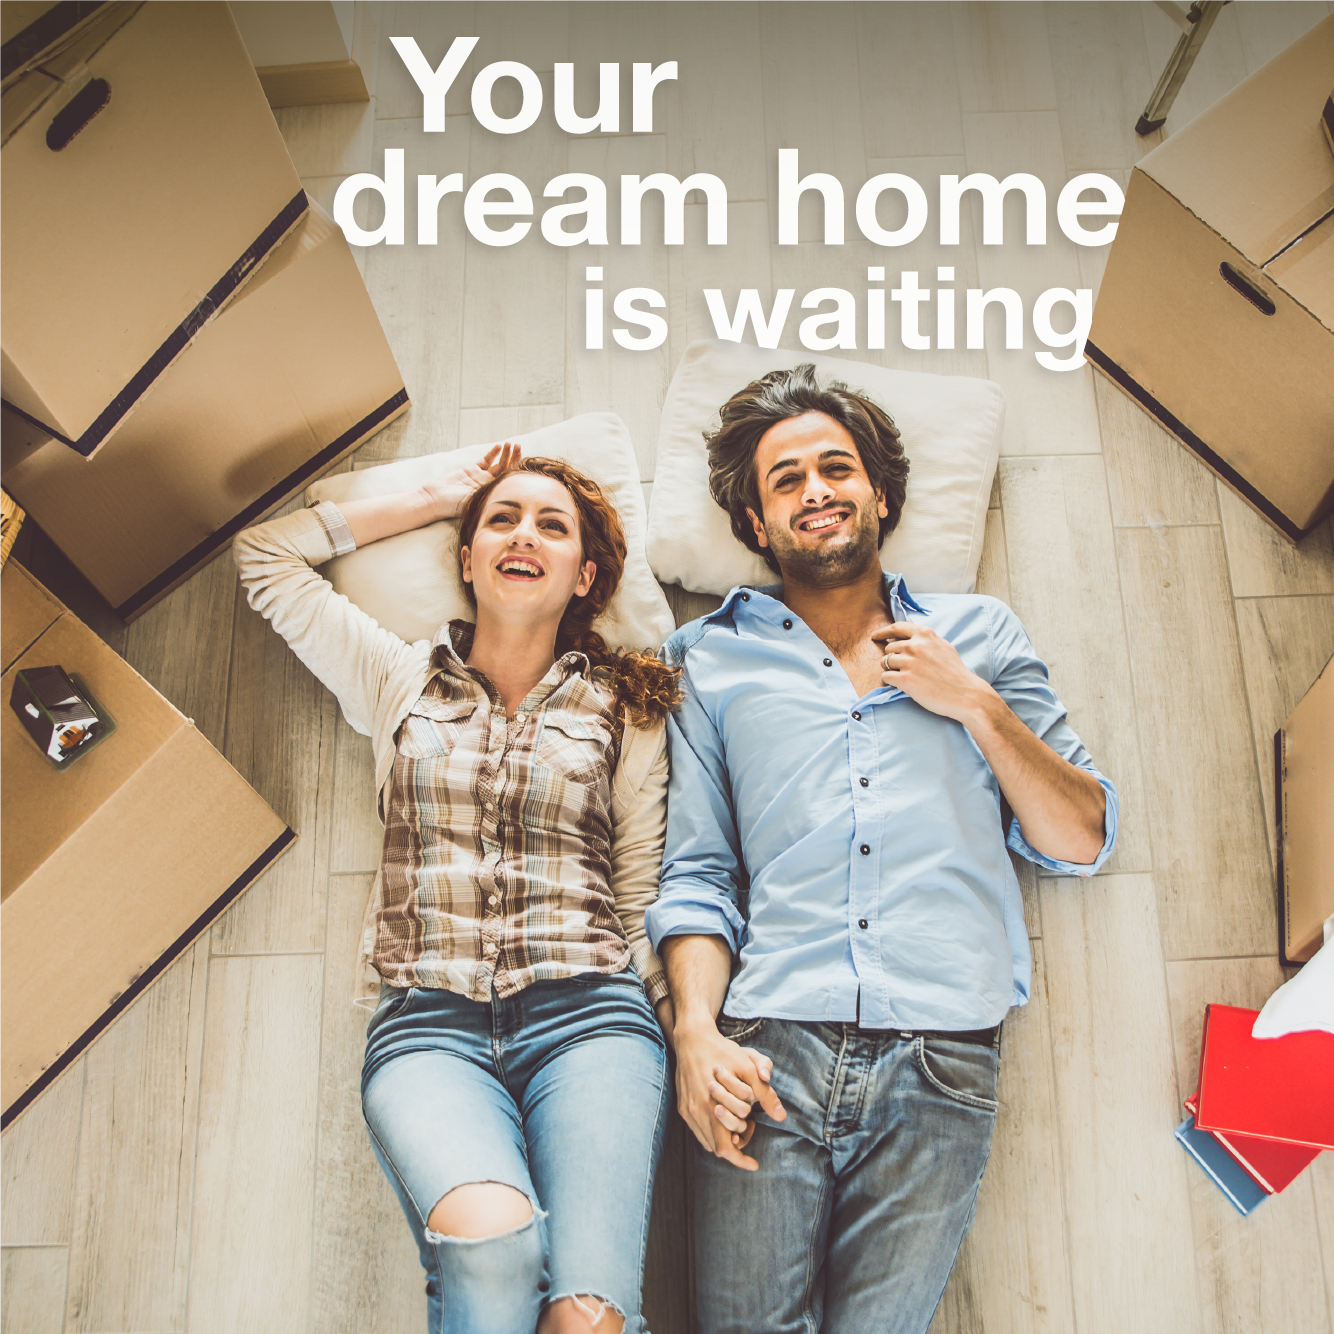 Your dream home is waiting